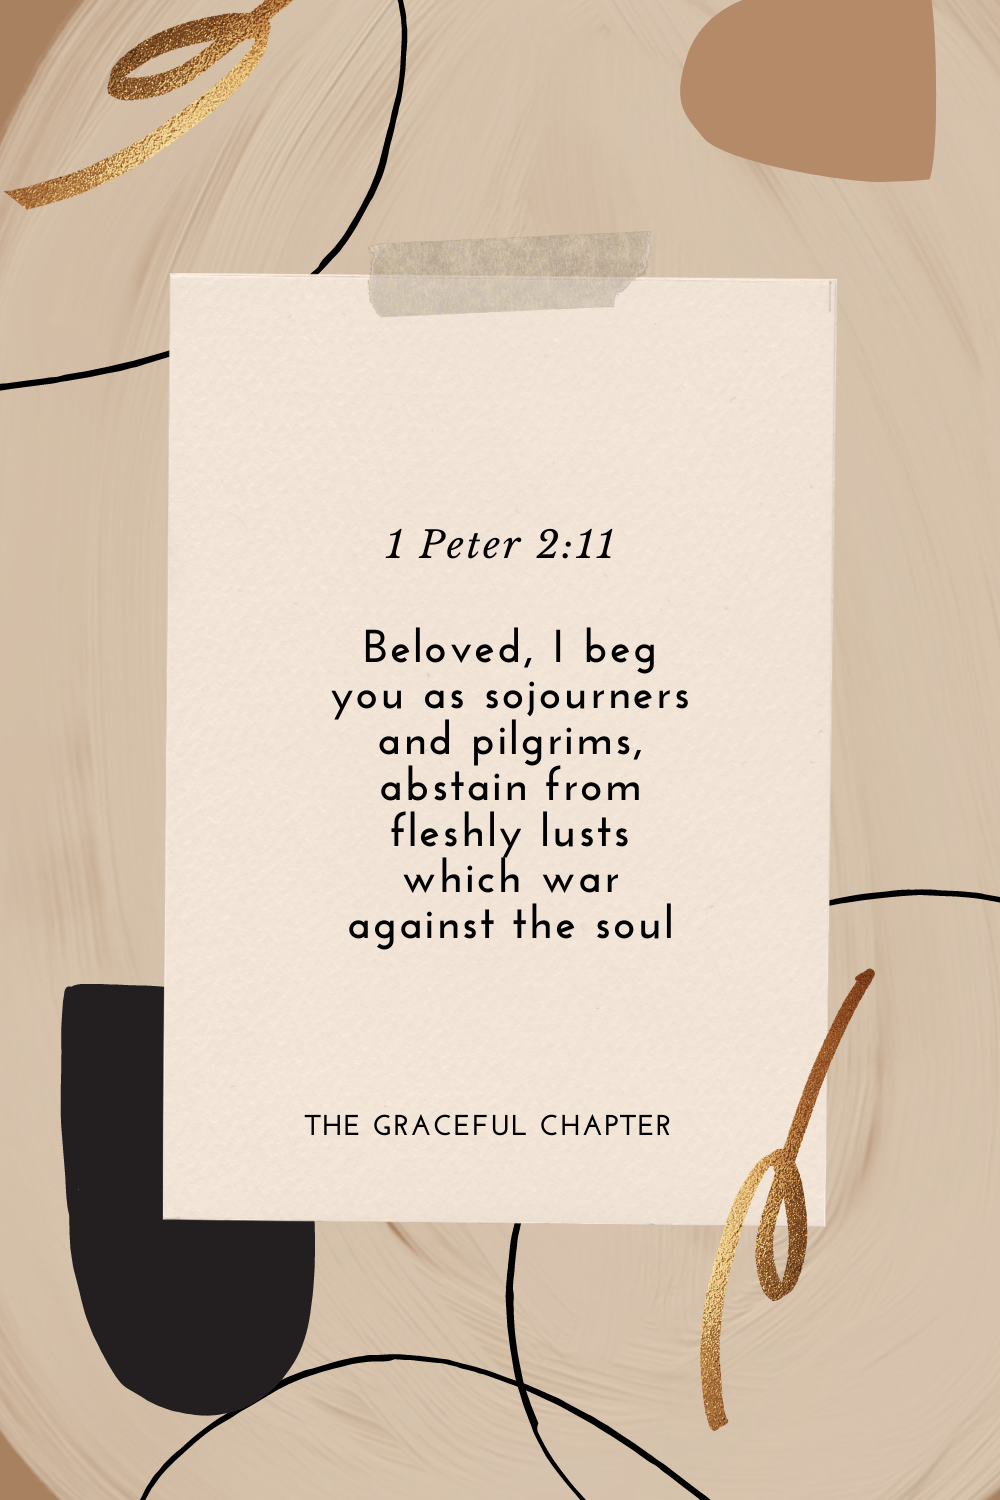 Beloved, I beg you as sojourners and pilgrims, abstain from fleshly lusts which war against the soul 1 Peter 2:11